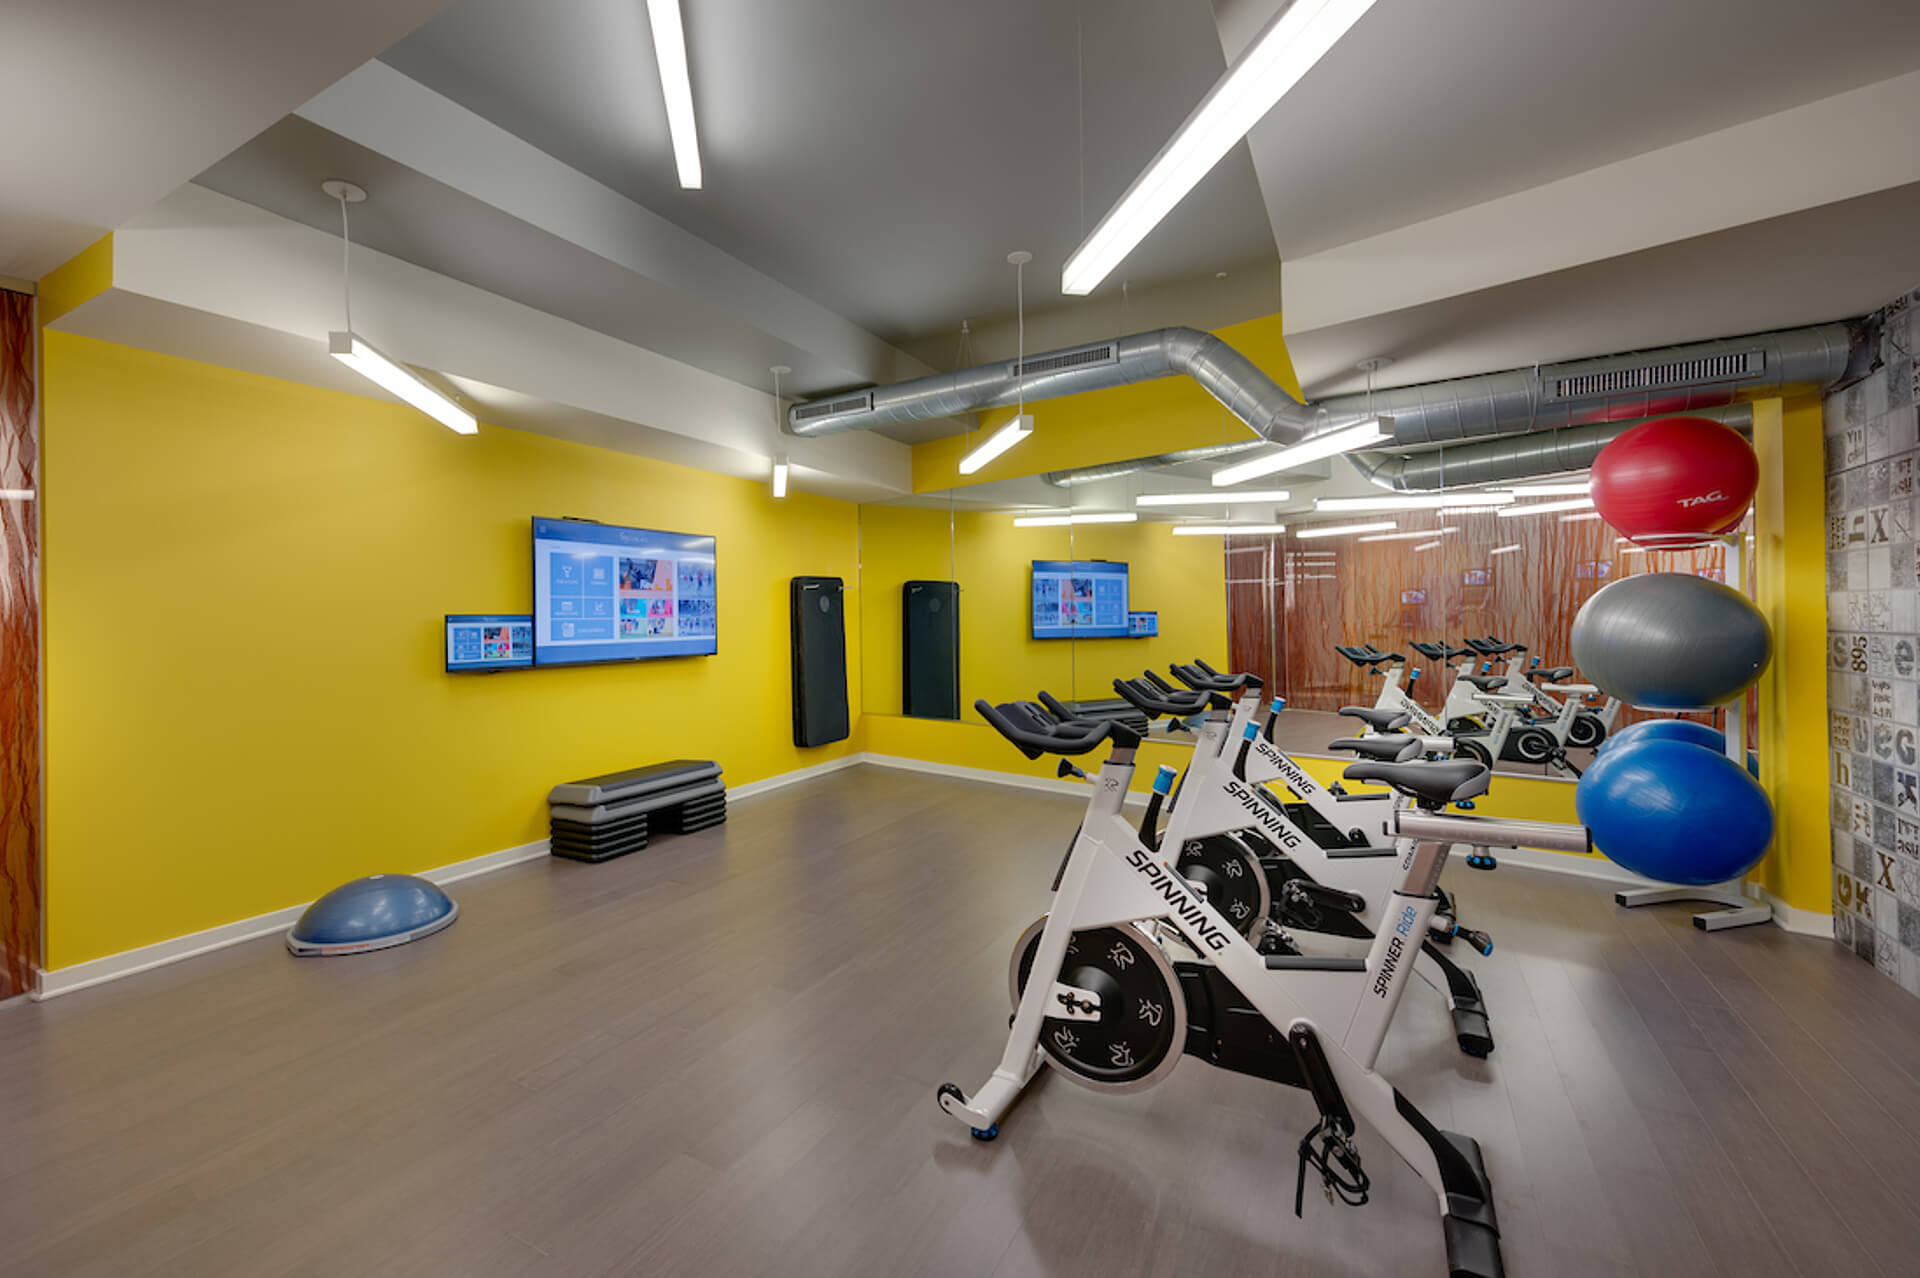 Get your daily exercise with our on-site gym